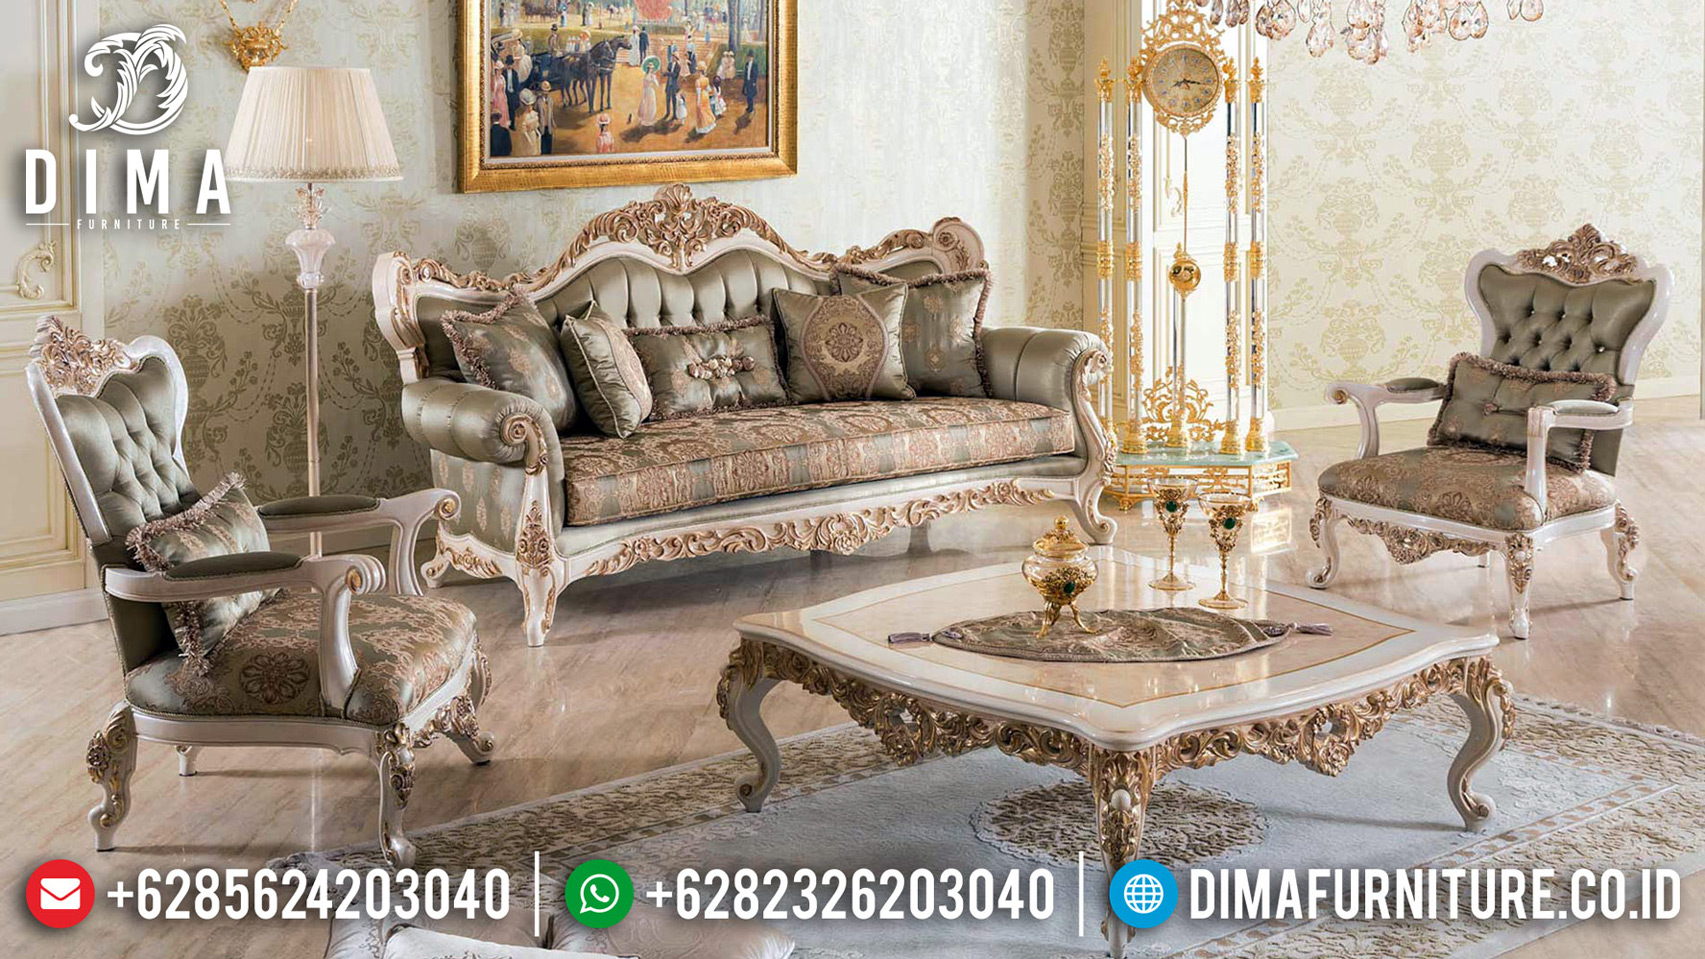 Jual Sofa Tamu Mewah Jepara New Design Luxury Classic Empire Style BT-0647